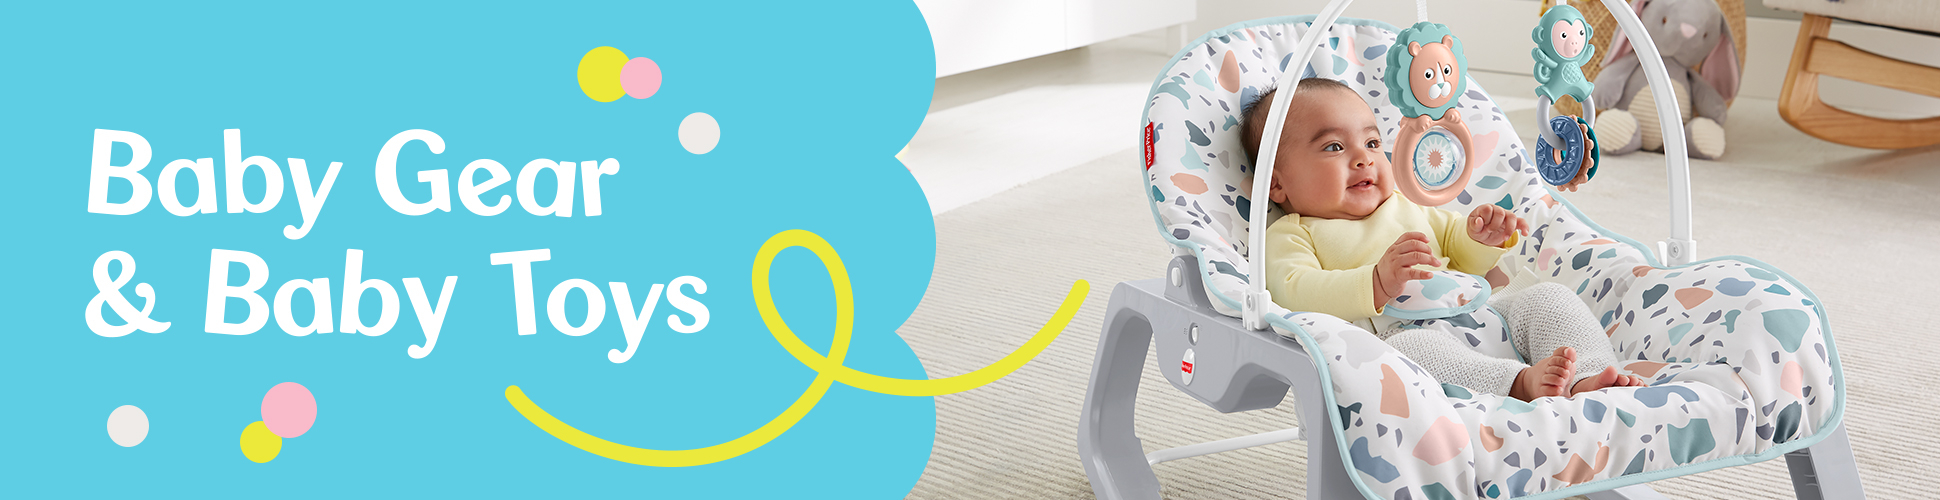 Baby Gear & Baby Toys